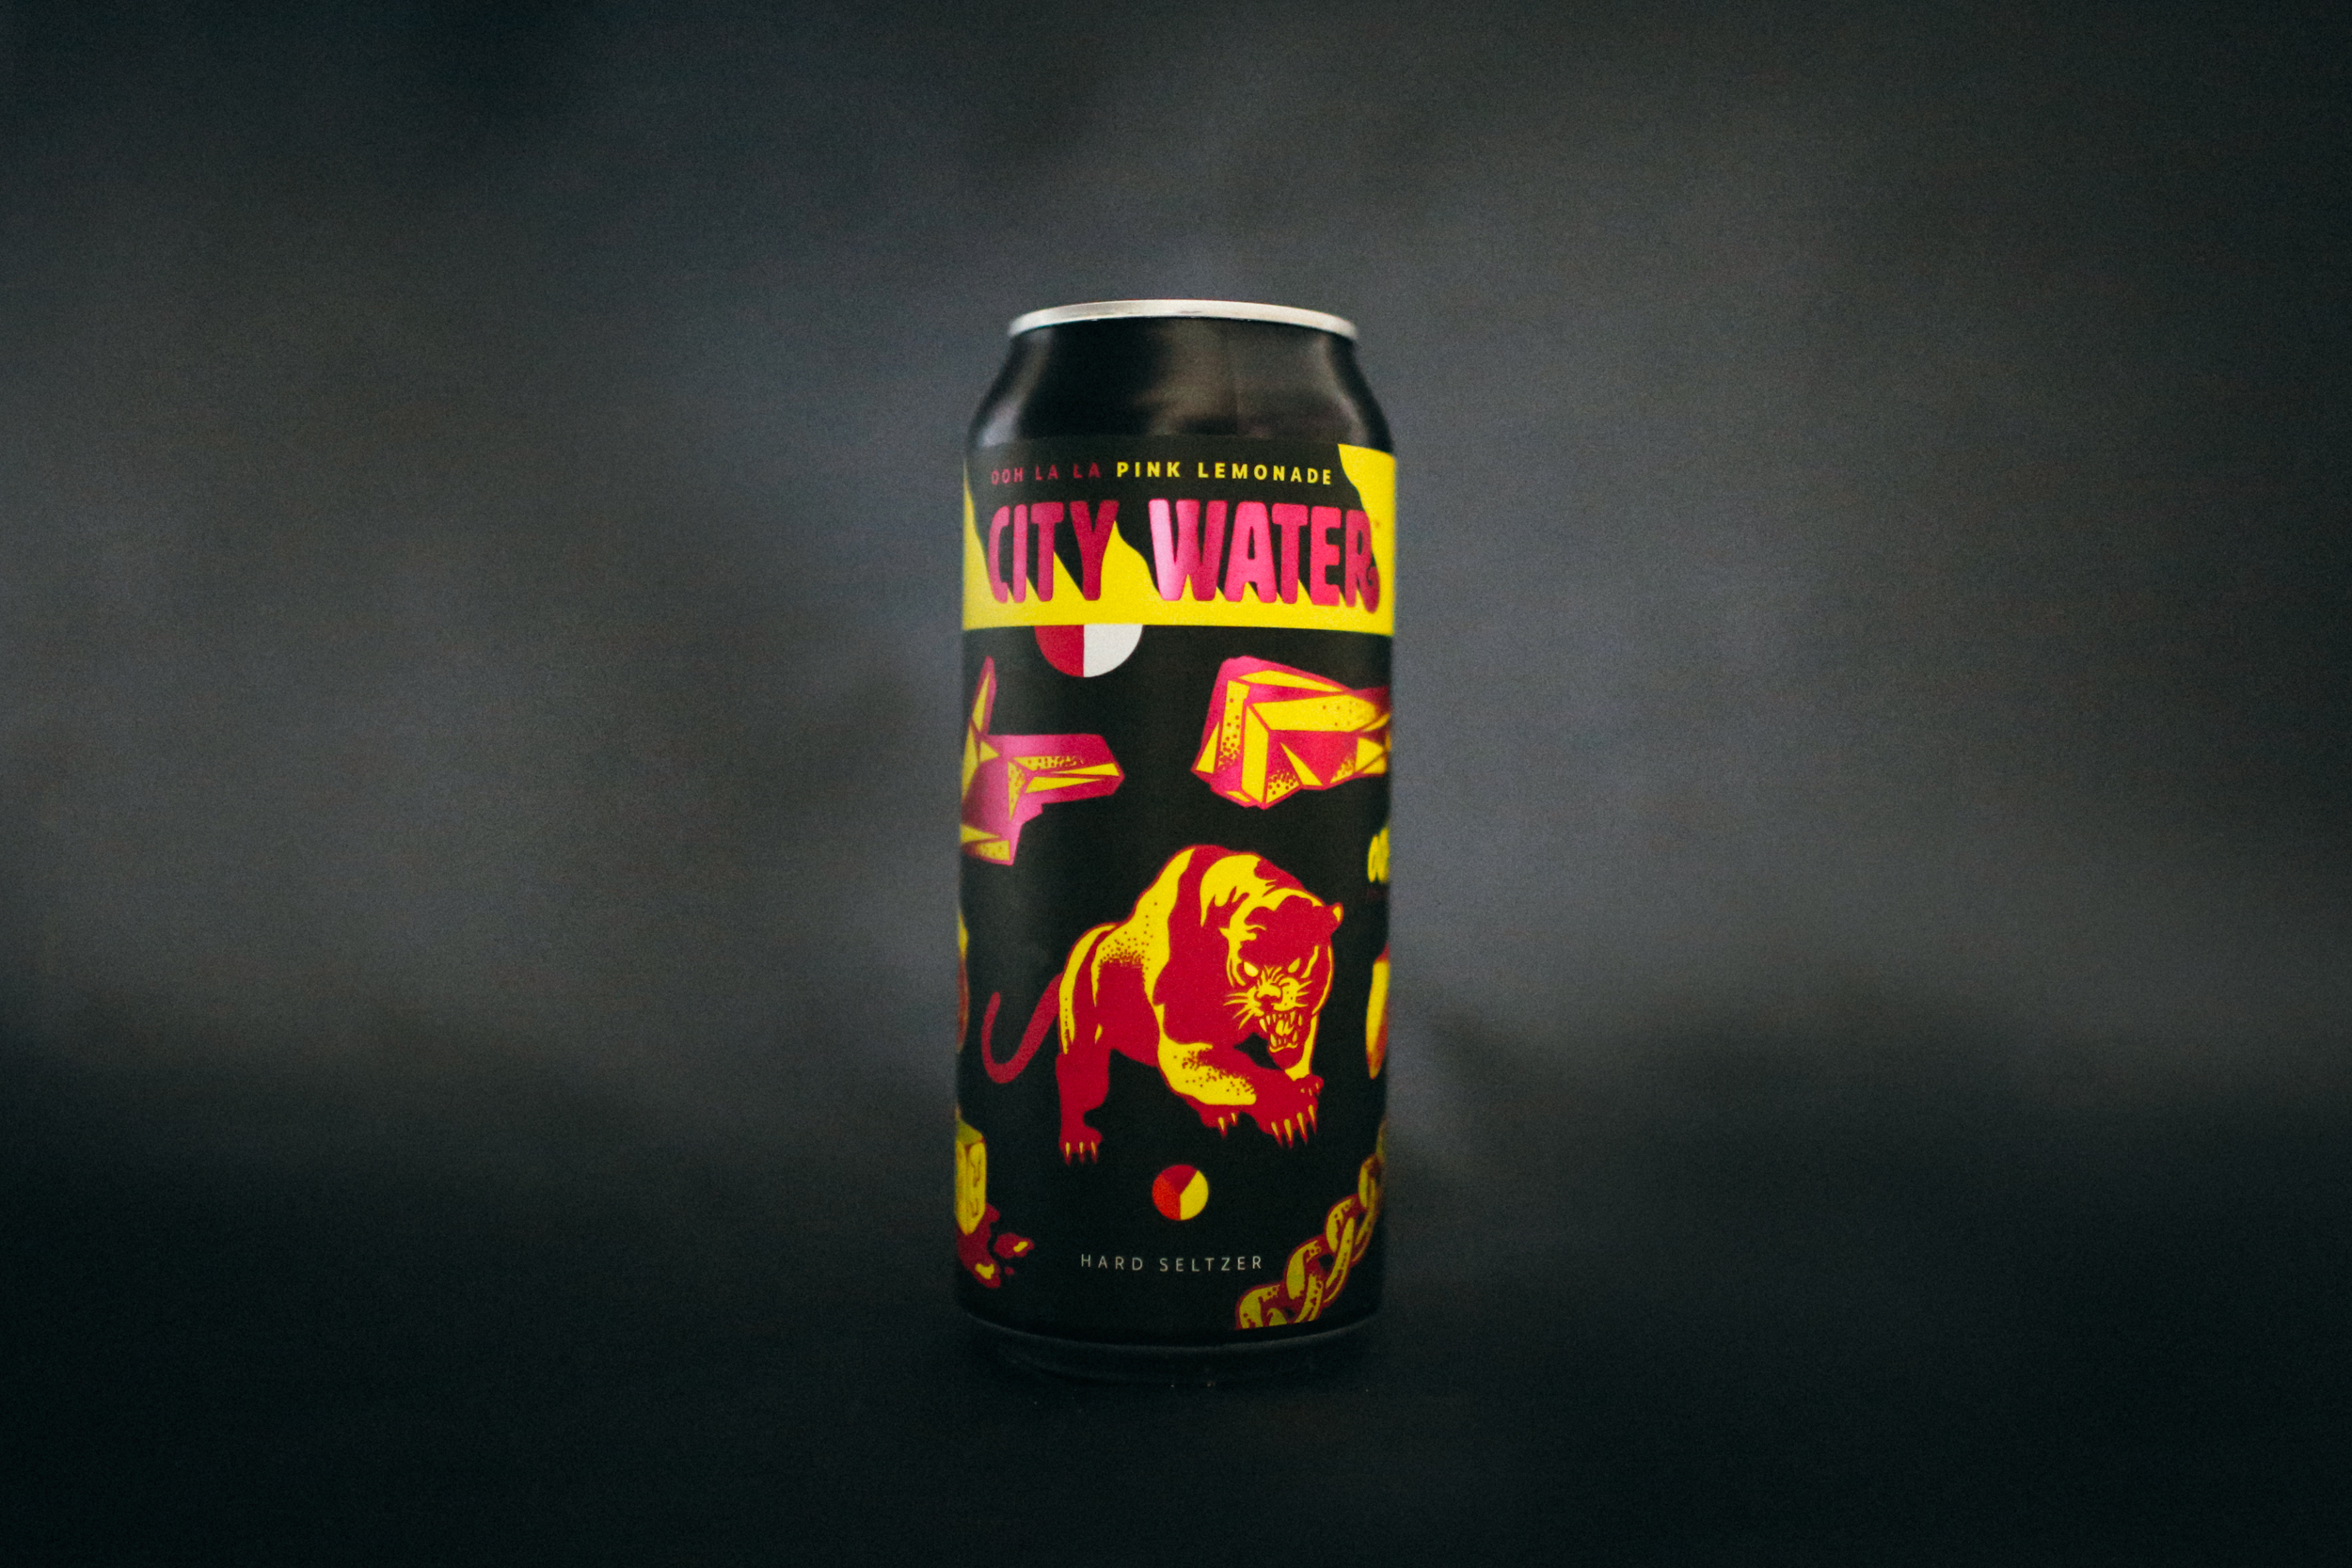 A local brewery collaborated with Run the Jewels on a new hard seltzer